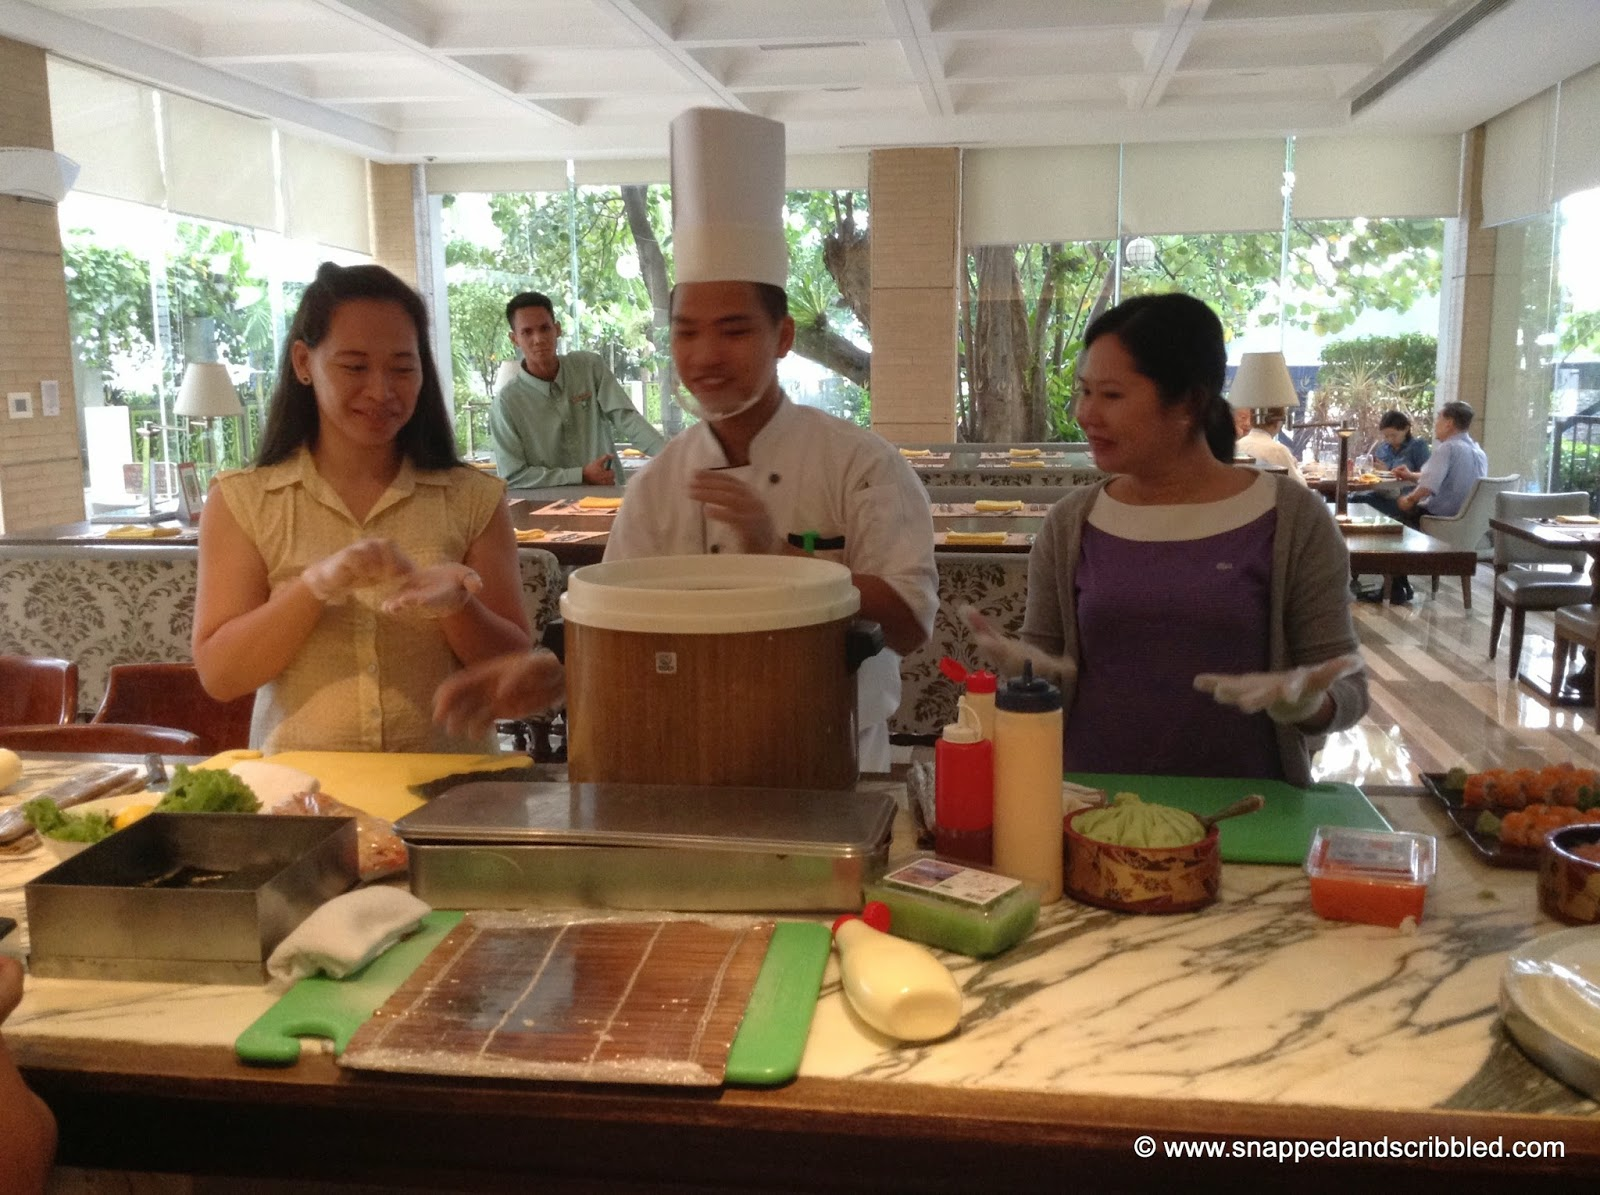 #MyManilaHotel Tour: How To Make A California Maki Roll